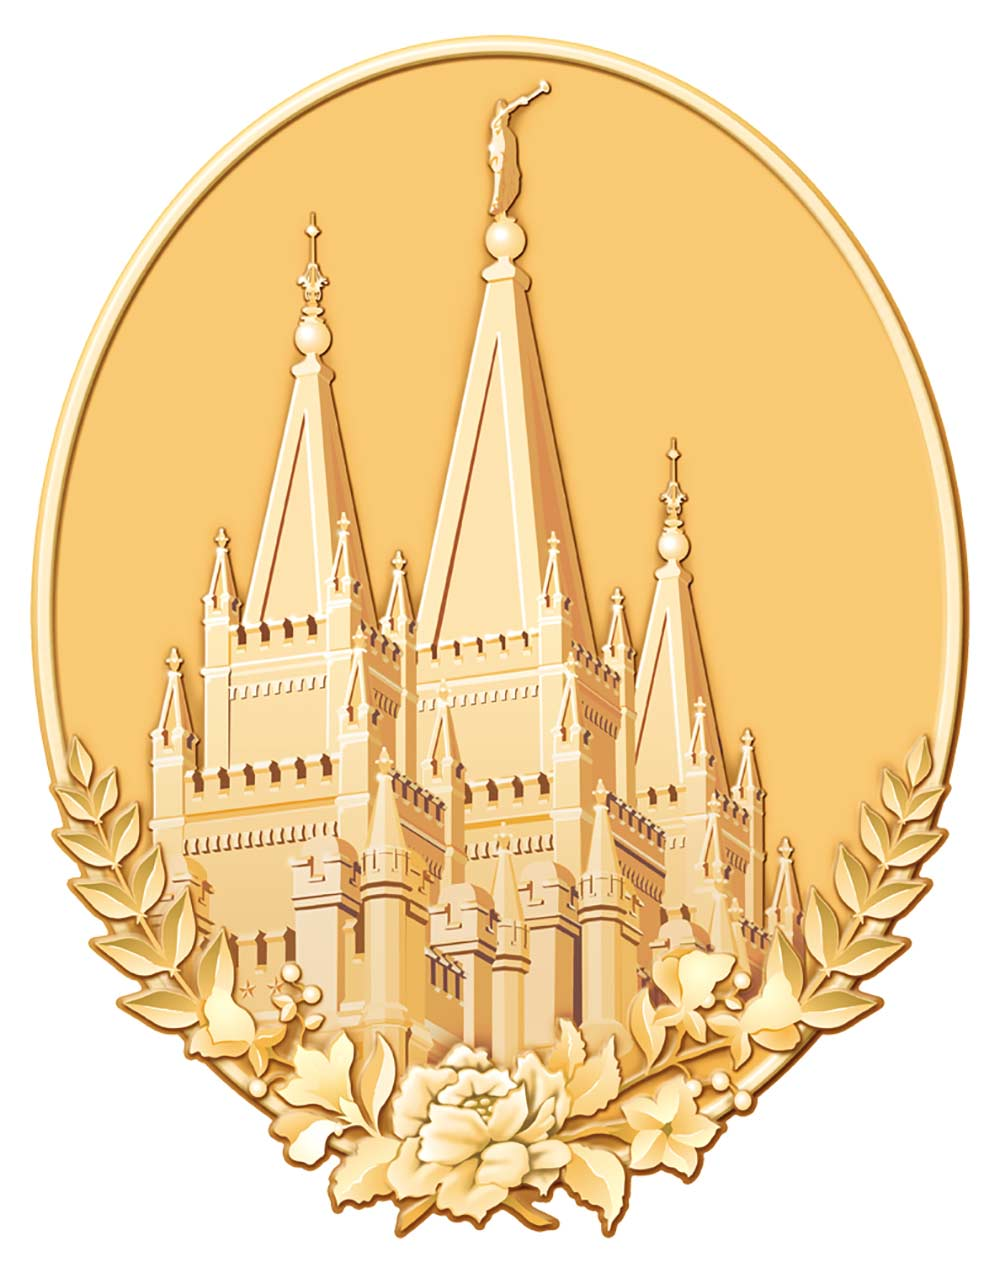 Yw medallion clipart clipart images gallery for free.